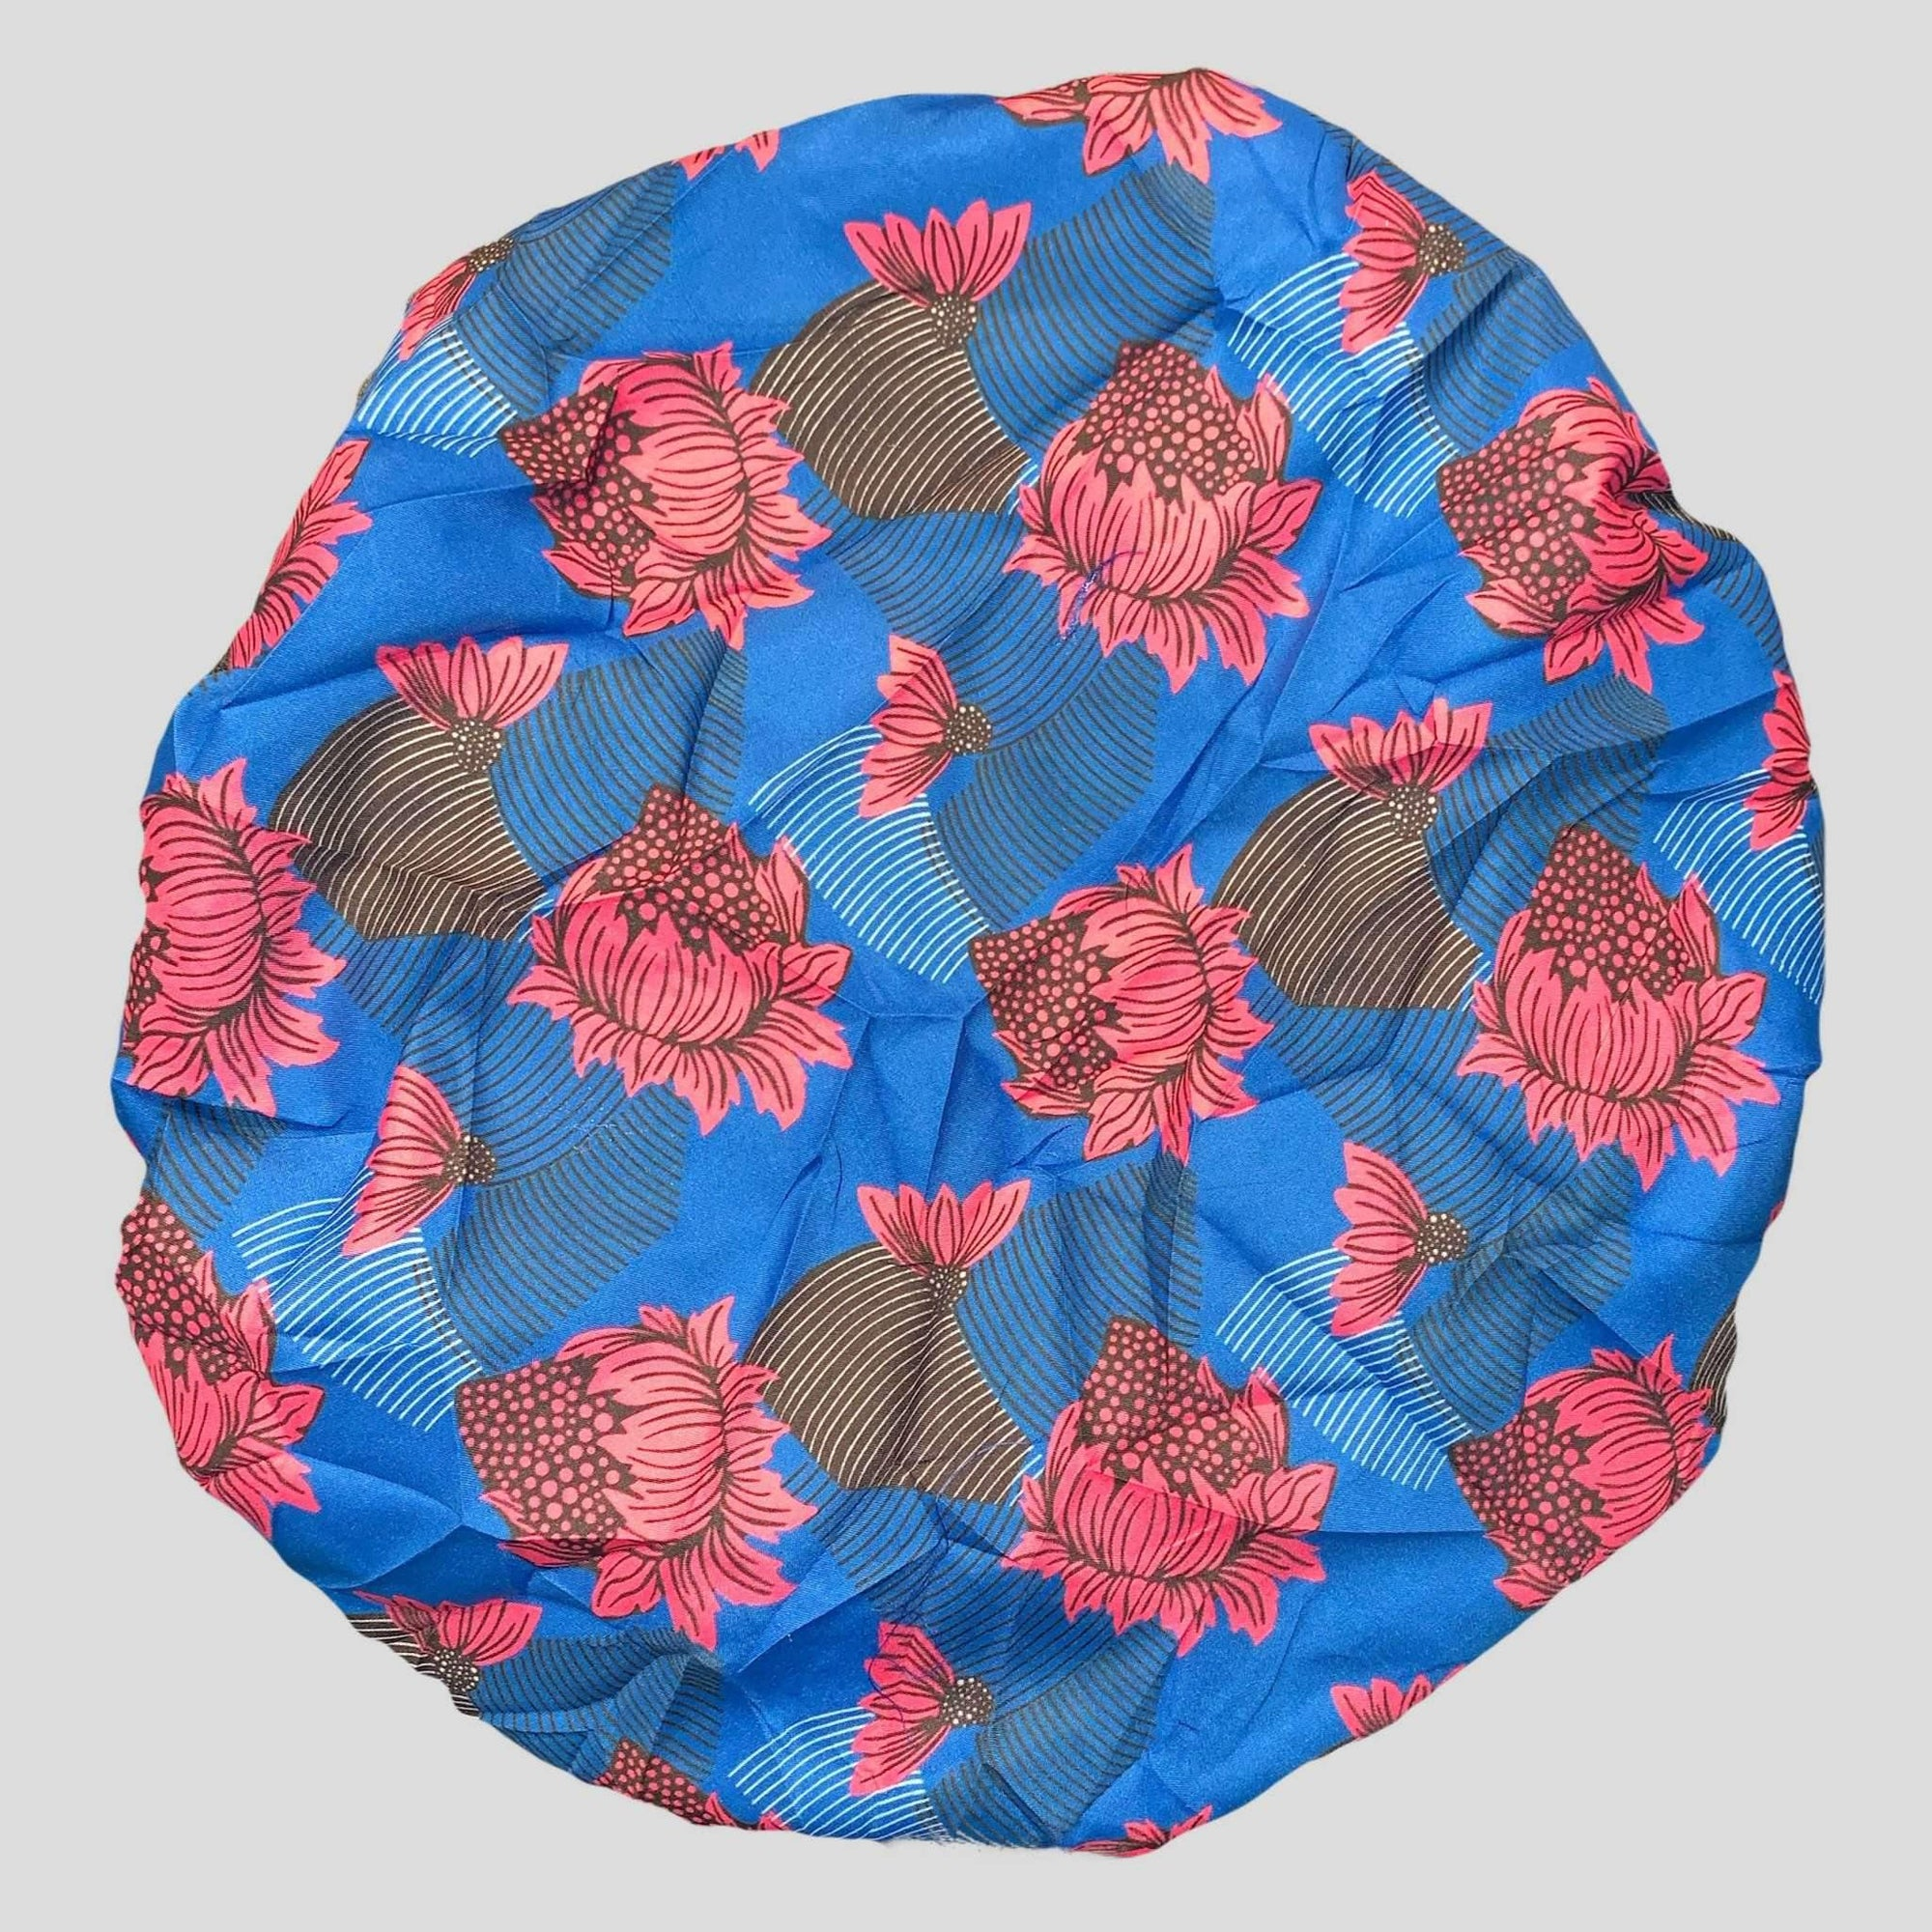 Jumbo Flower Big Bonnet - Durag Wave